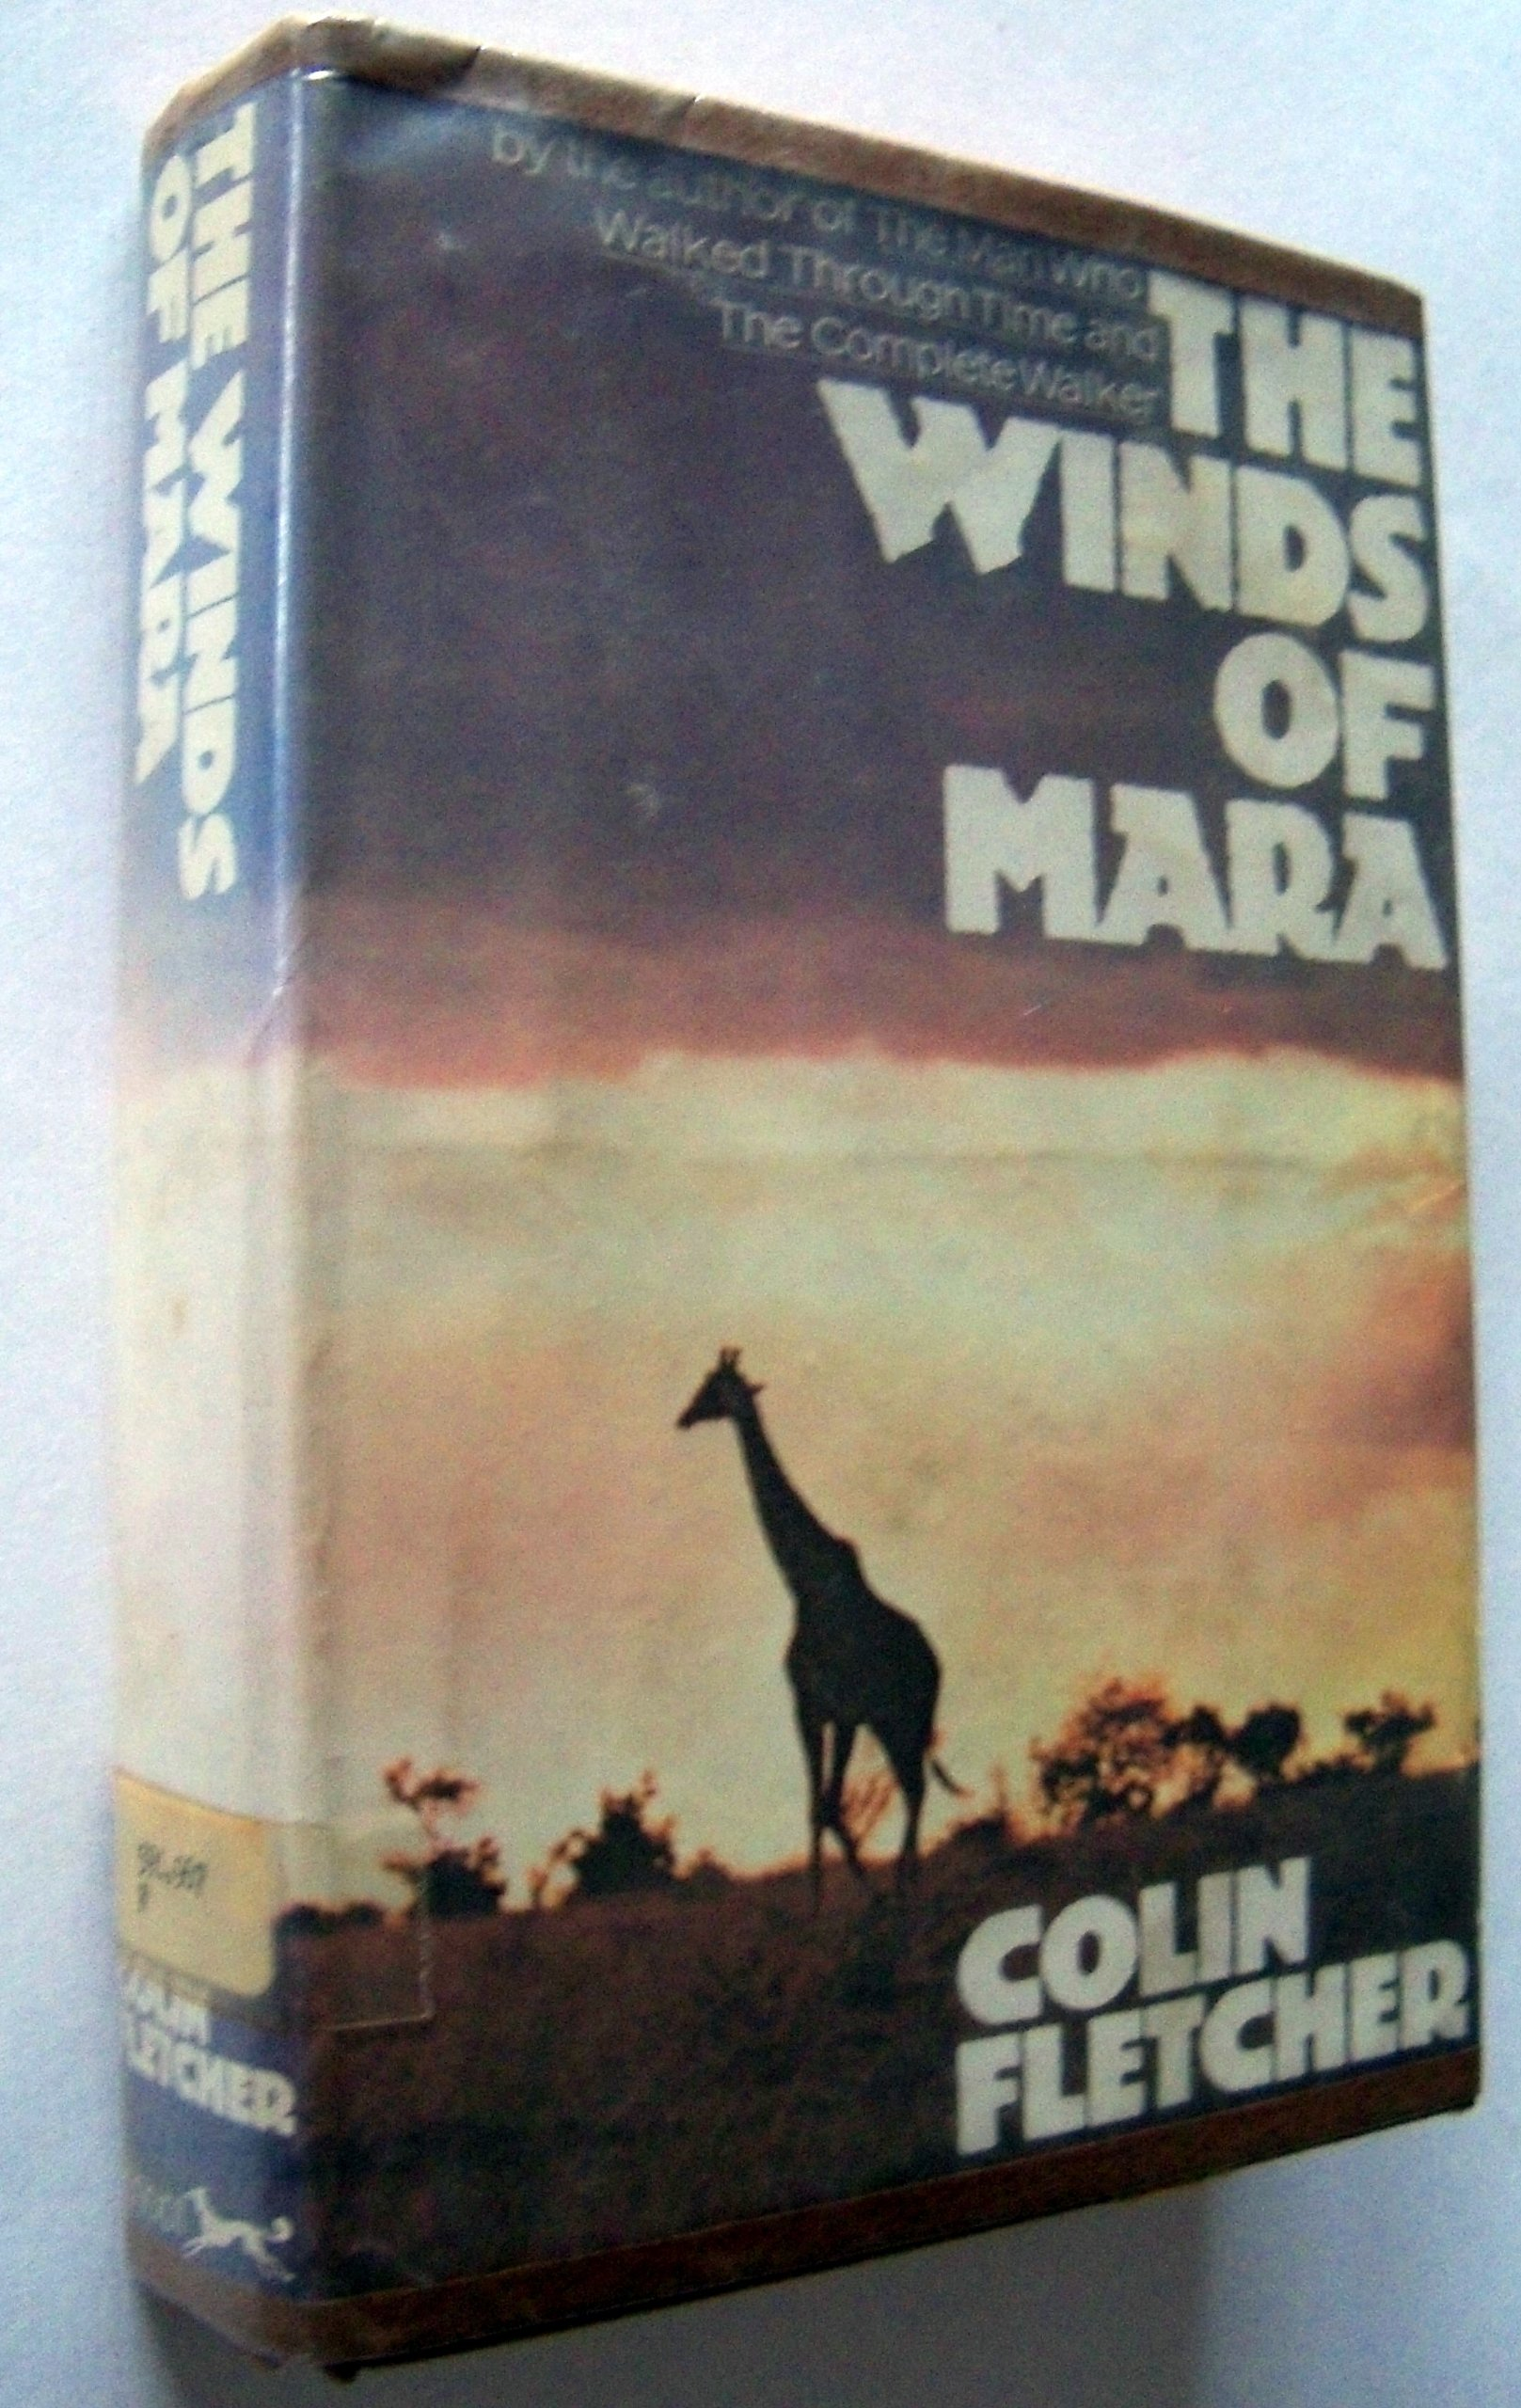 The Winds of Mara, Fletcher, Colin